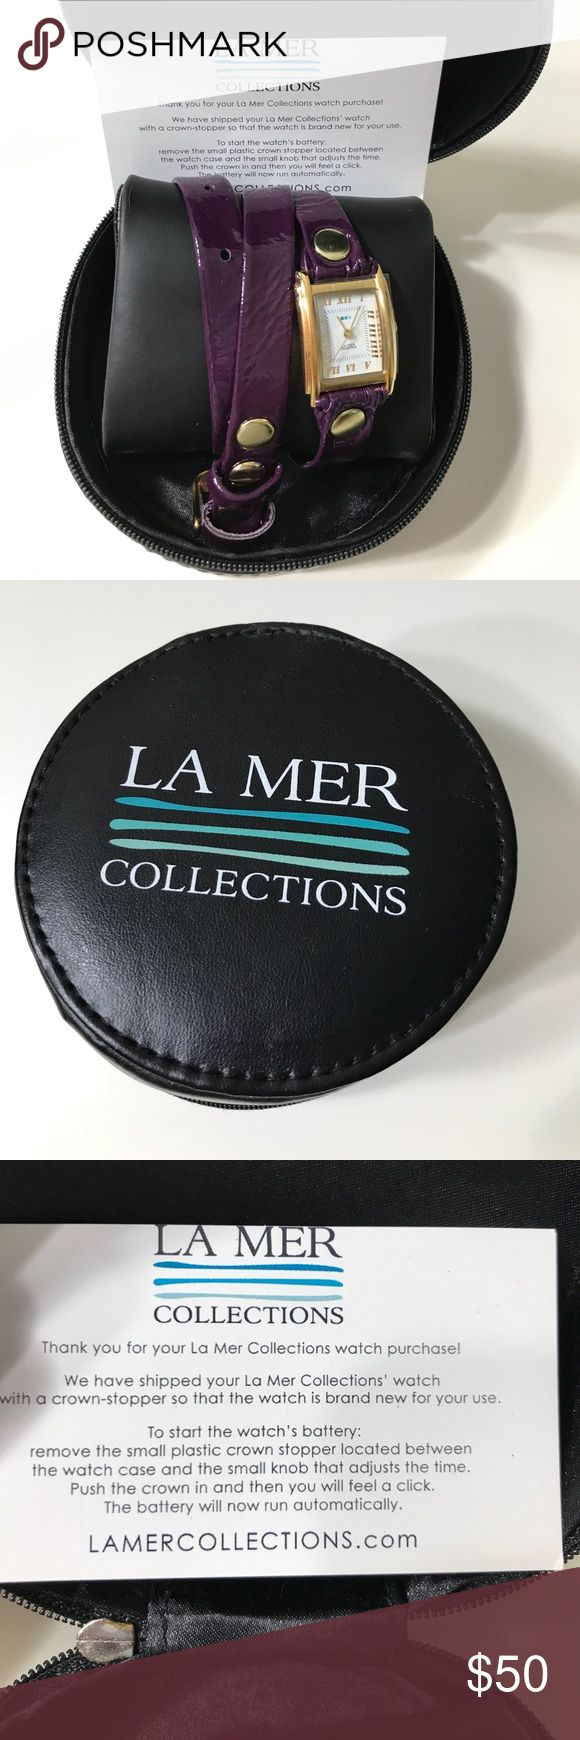 Brand New La Mer Wrap Watch This is a brand new (battery has never been started) La Mer Wrap Watch. The band is purple patent leather and it has gold hardware. I designed this watch personally on the website. I never used it. La Mer Accessories Watches